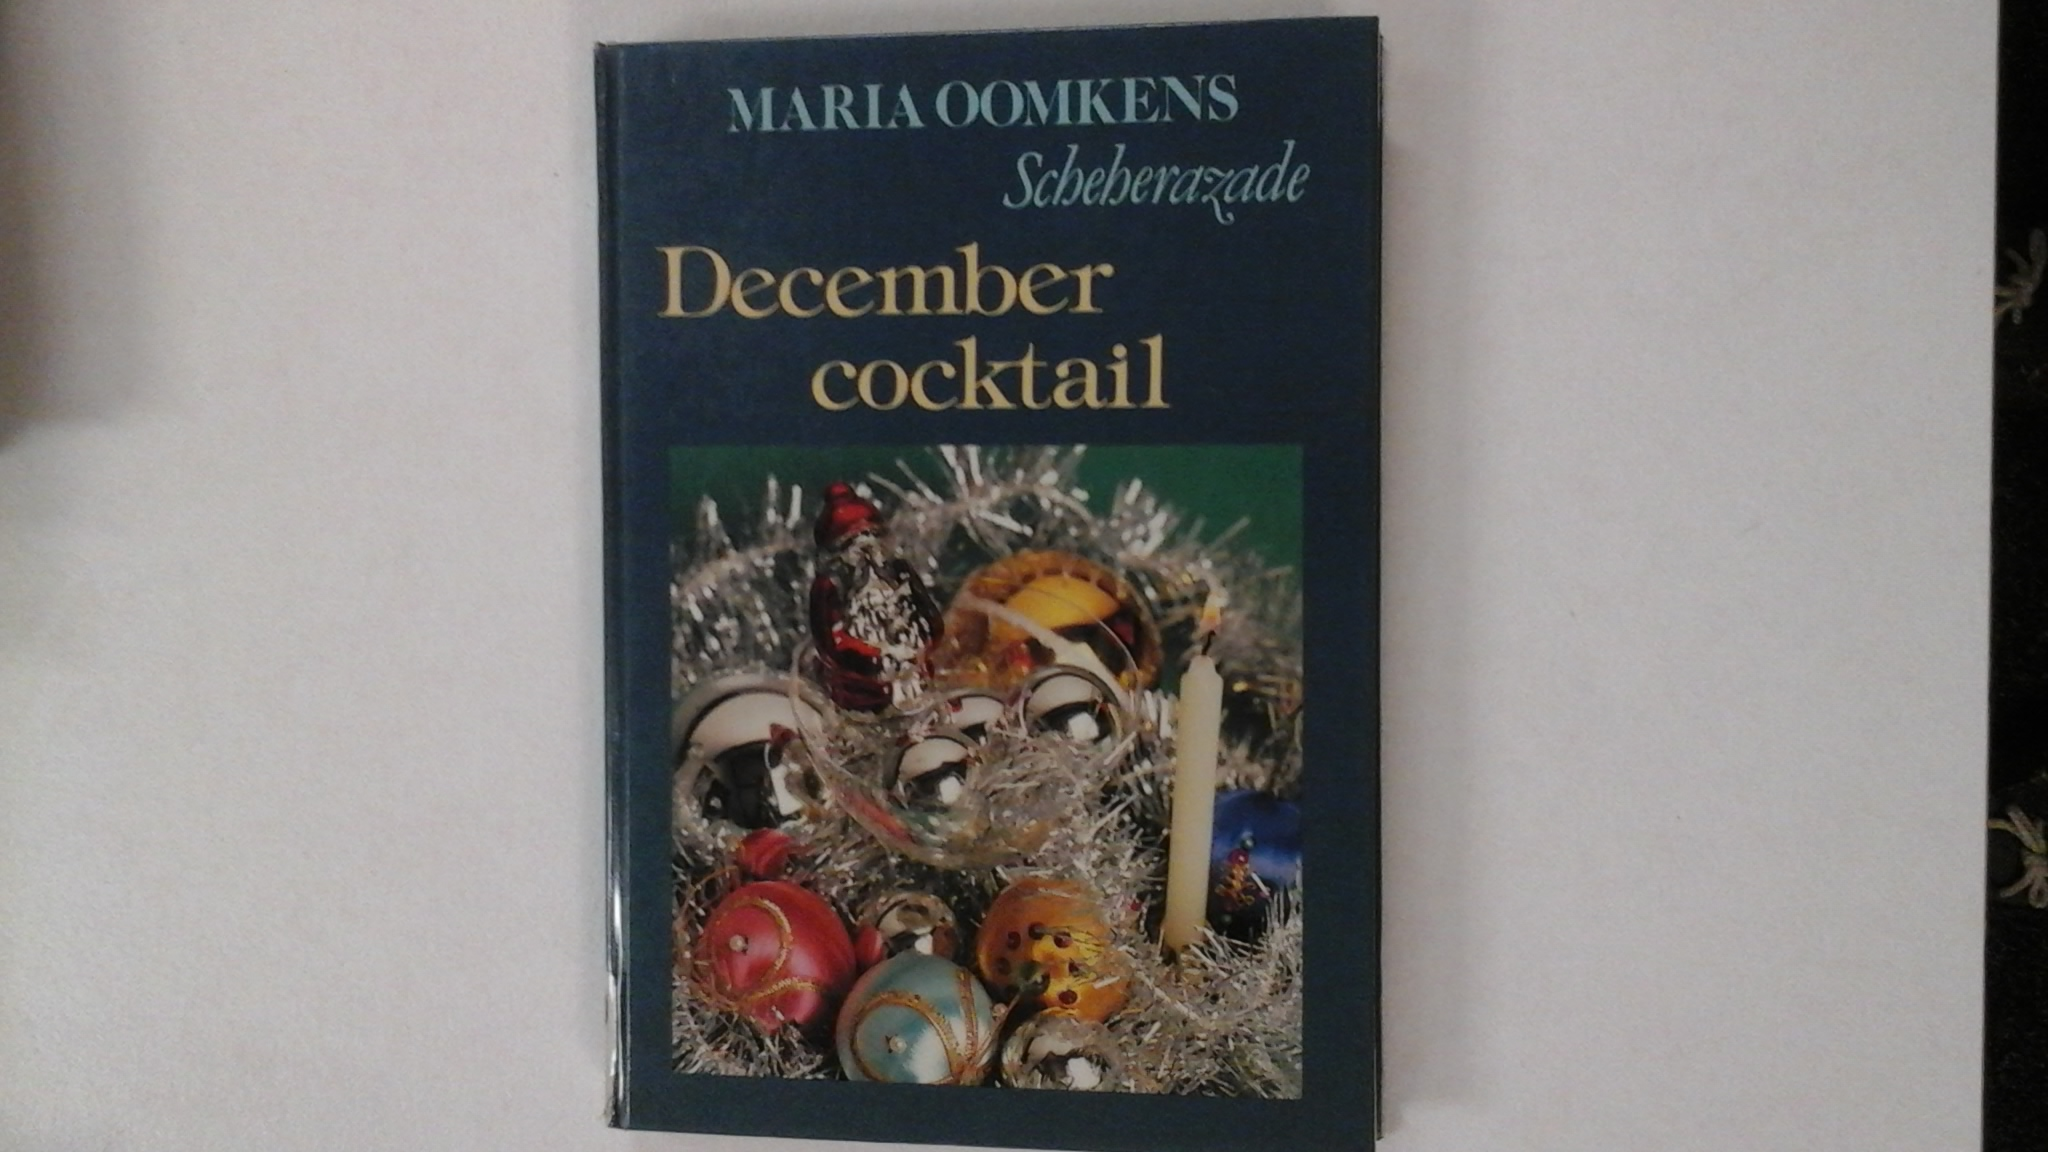 December cocktail. Scheherazade (Maria Oomkens)